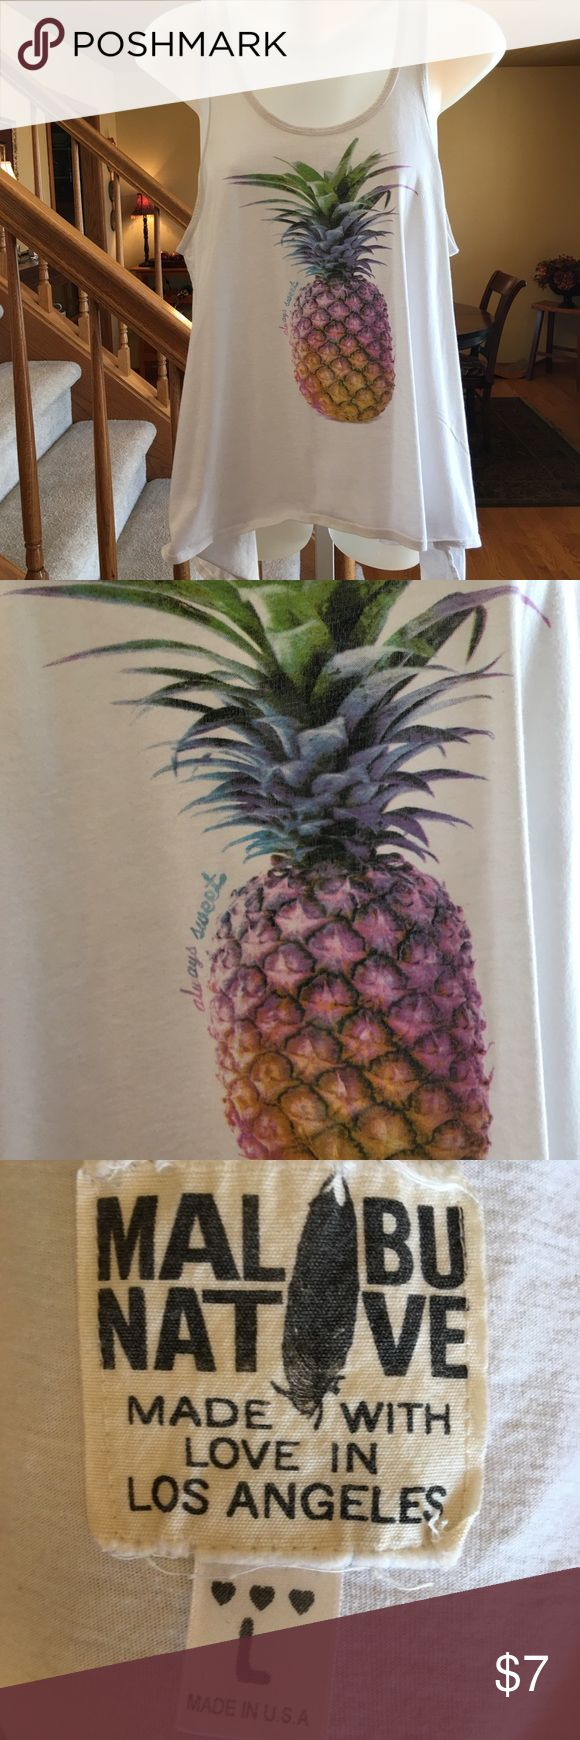 "Funky Pineapple Tank Top by MALIBU  L Great Breezy tank top by MALIBU Los Angeles in excellent used condition!  Sides longer than front and back. Purchased at Nordstrom.   Women's size Large Bust 38"".   From our clean smoke free home.   🐞Check out my other $7 Dollar or Less items to bundle and save even more!🌻 Malibu Tops Tank Tops"